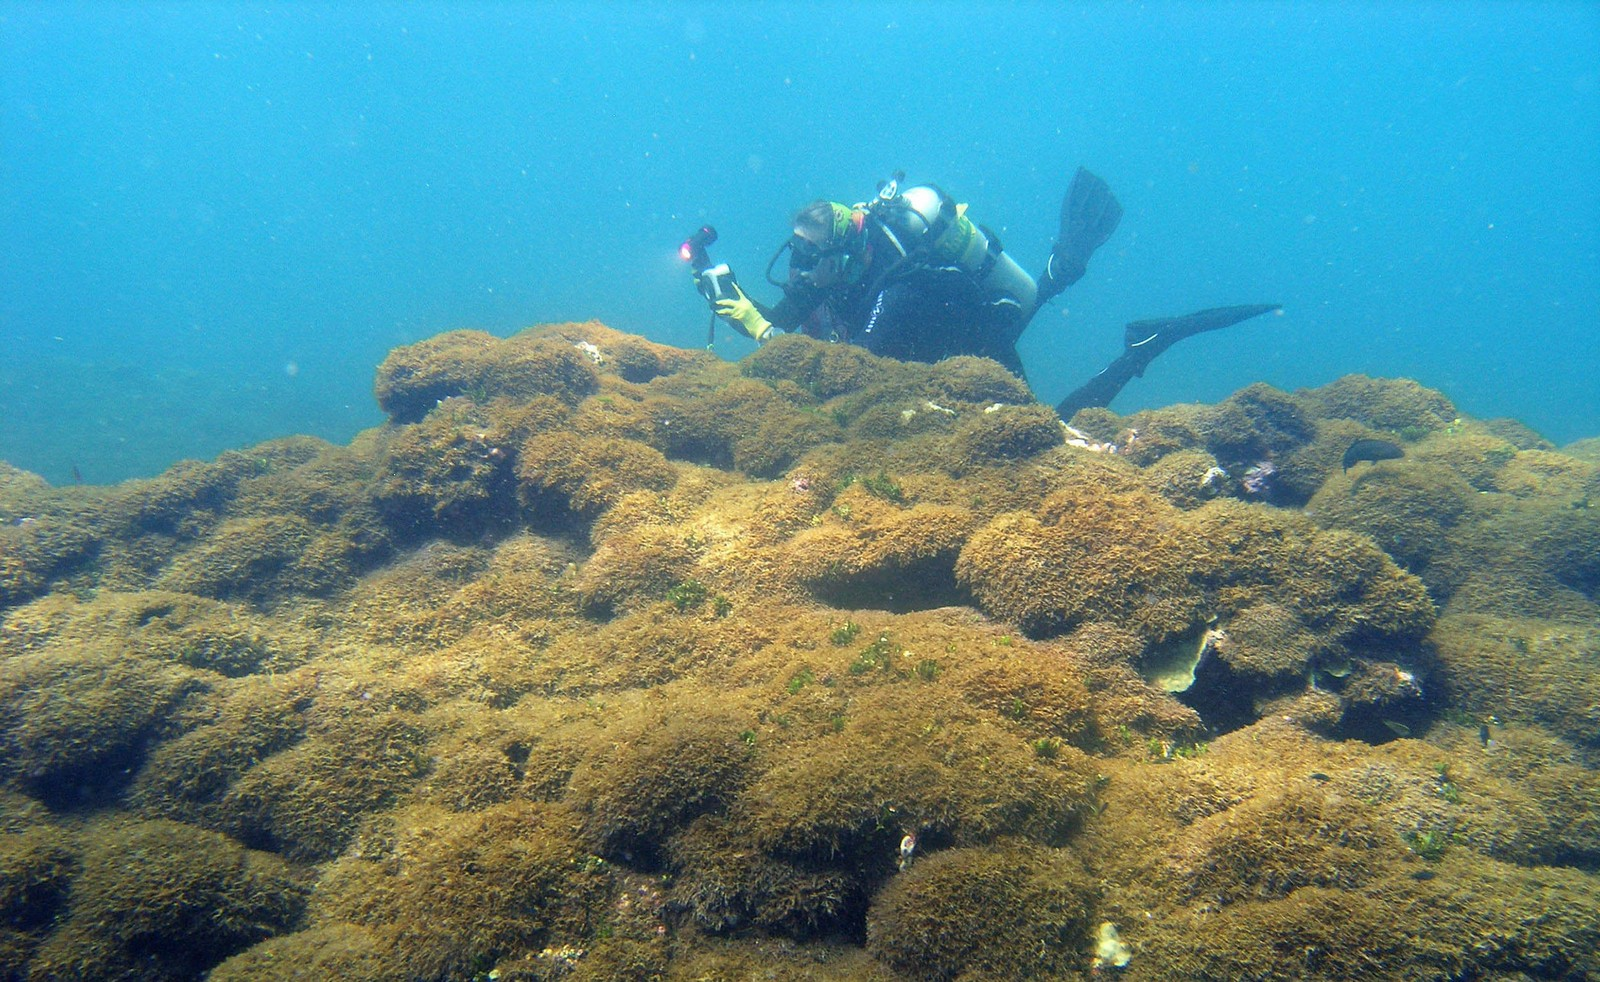 A diver takes photos of coral reef smothered in lumpy algae.